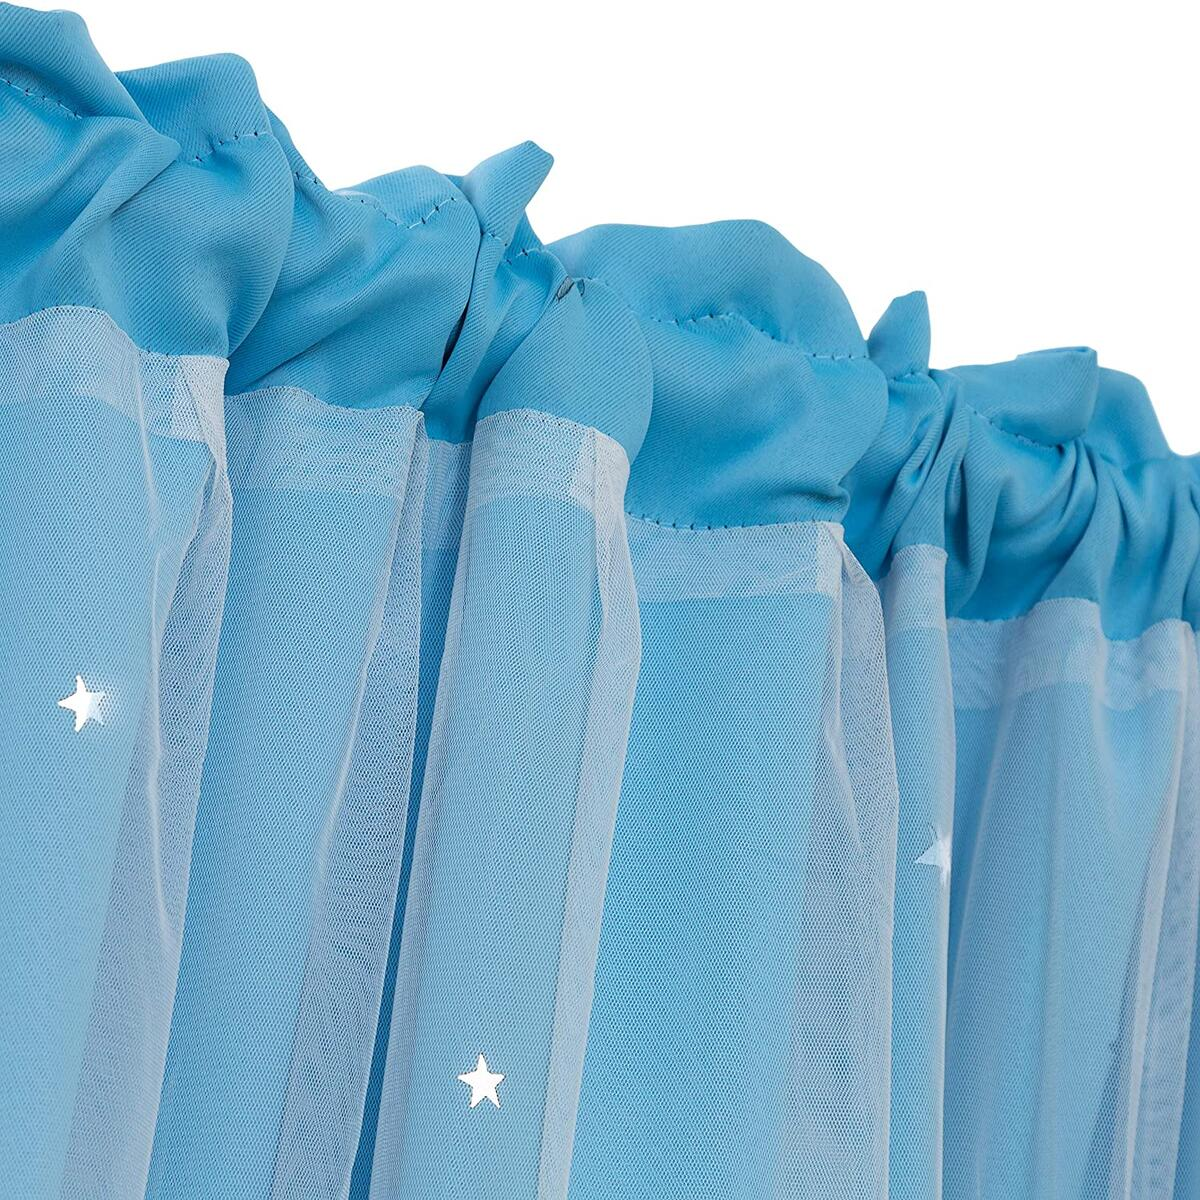 Star Curtains Stars Blackout Curtains for Kids Girls Bedroom Living Room Double Layer Star Cut Out Solid Window Curtains Rod Pocket Treatment Drapes Panels Set 54x84'' 2pc (108x84) ( ALL COLORS )